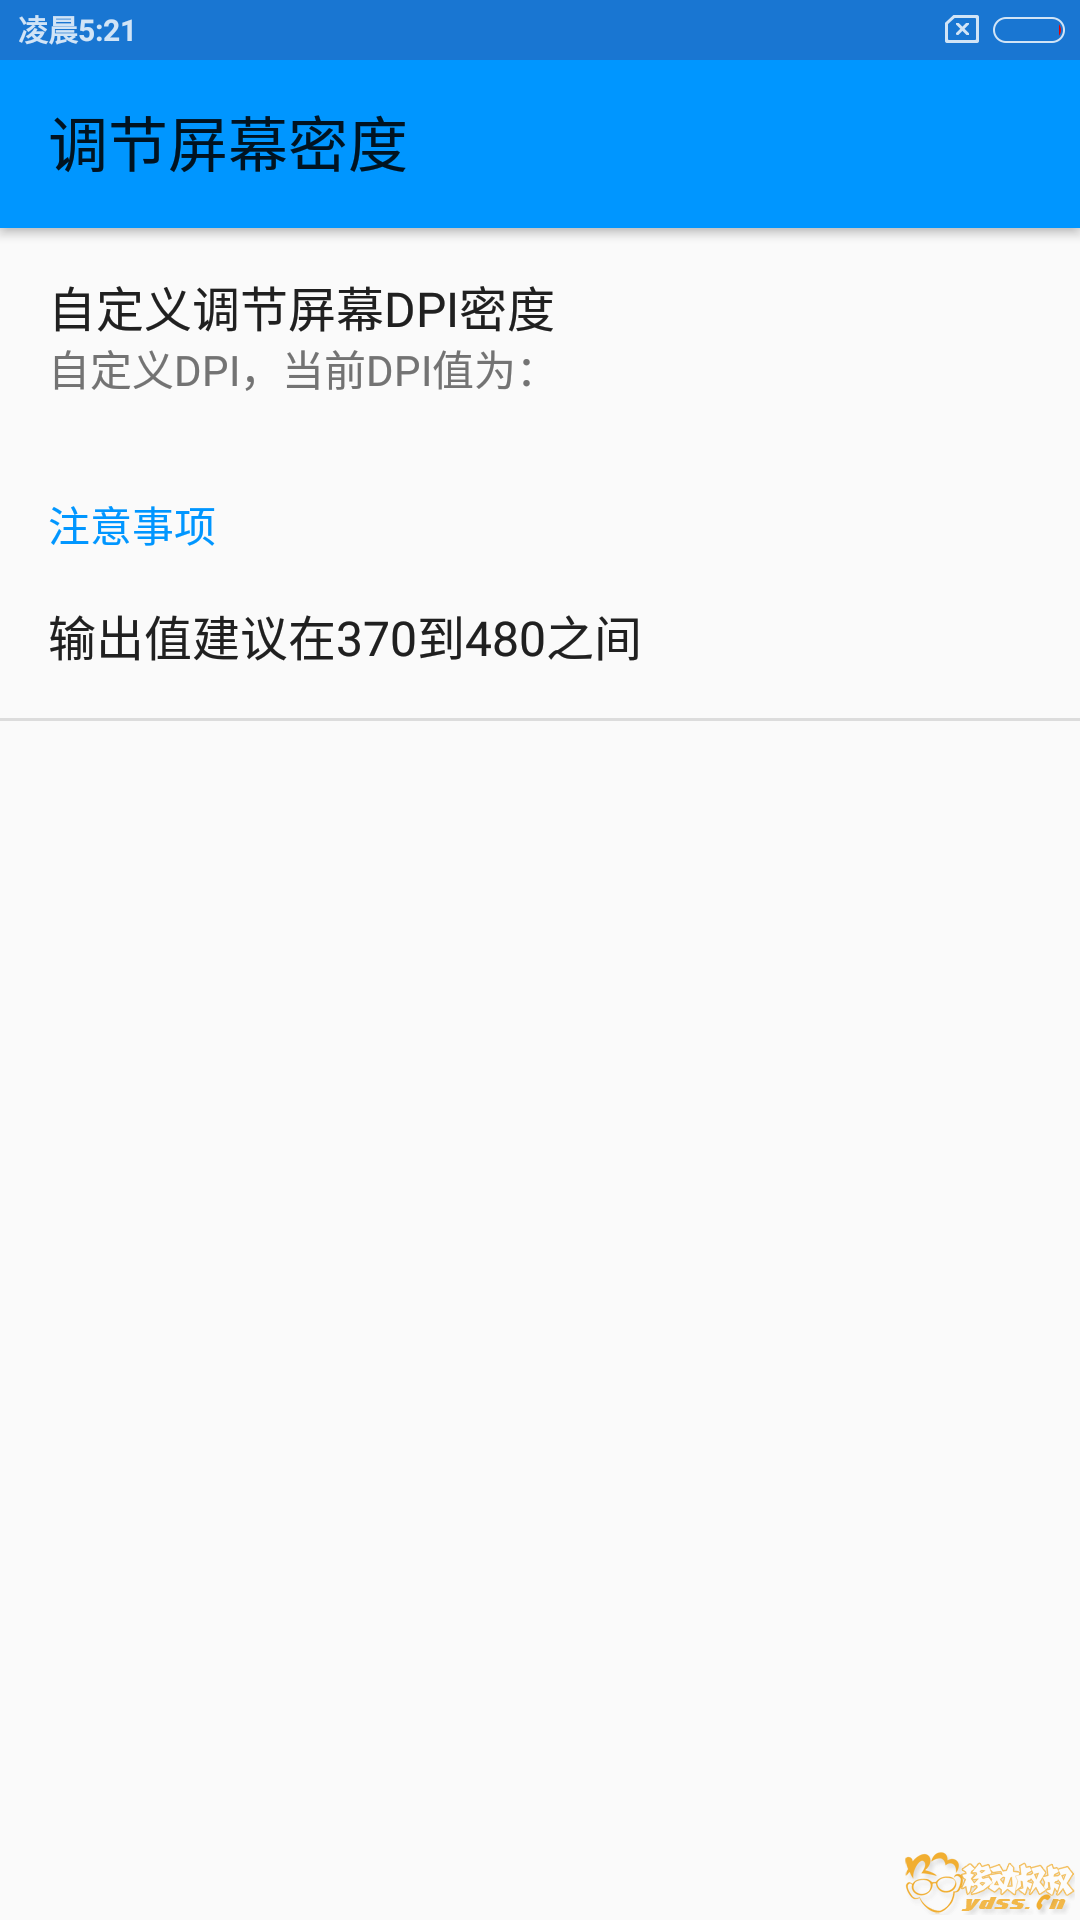 Screenshot_2018-05-16-05-21-10-105_com.zhanhong.t.png